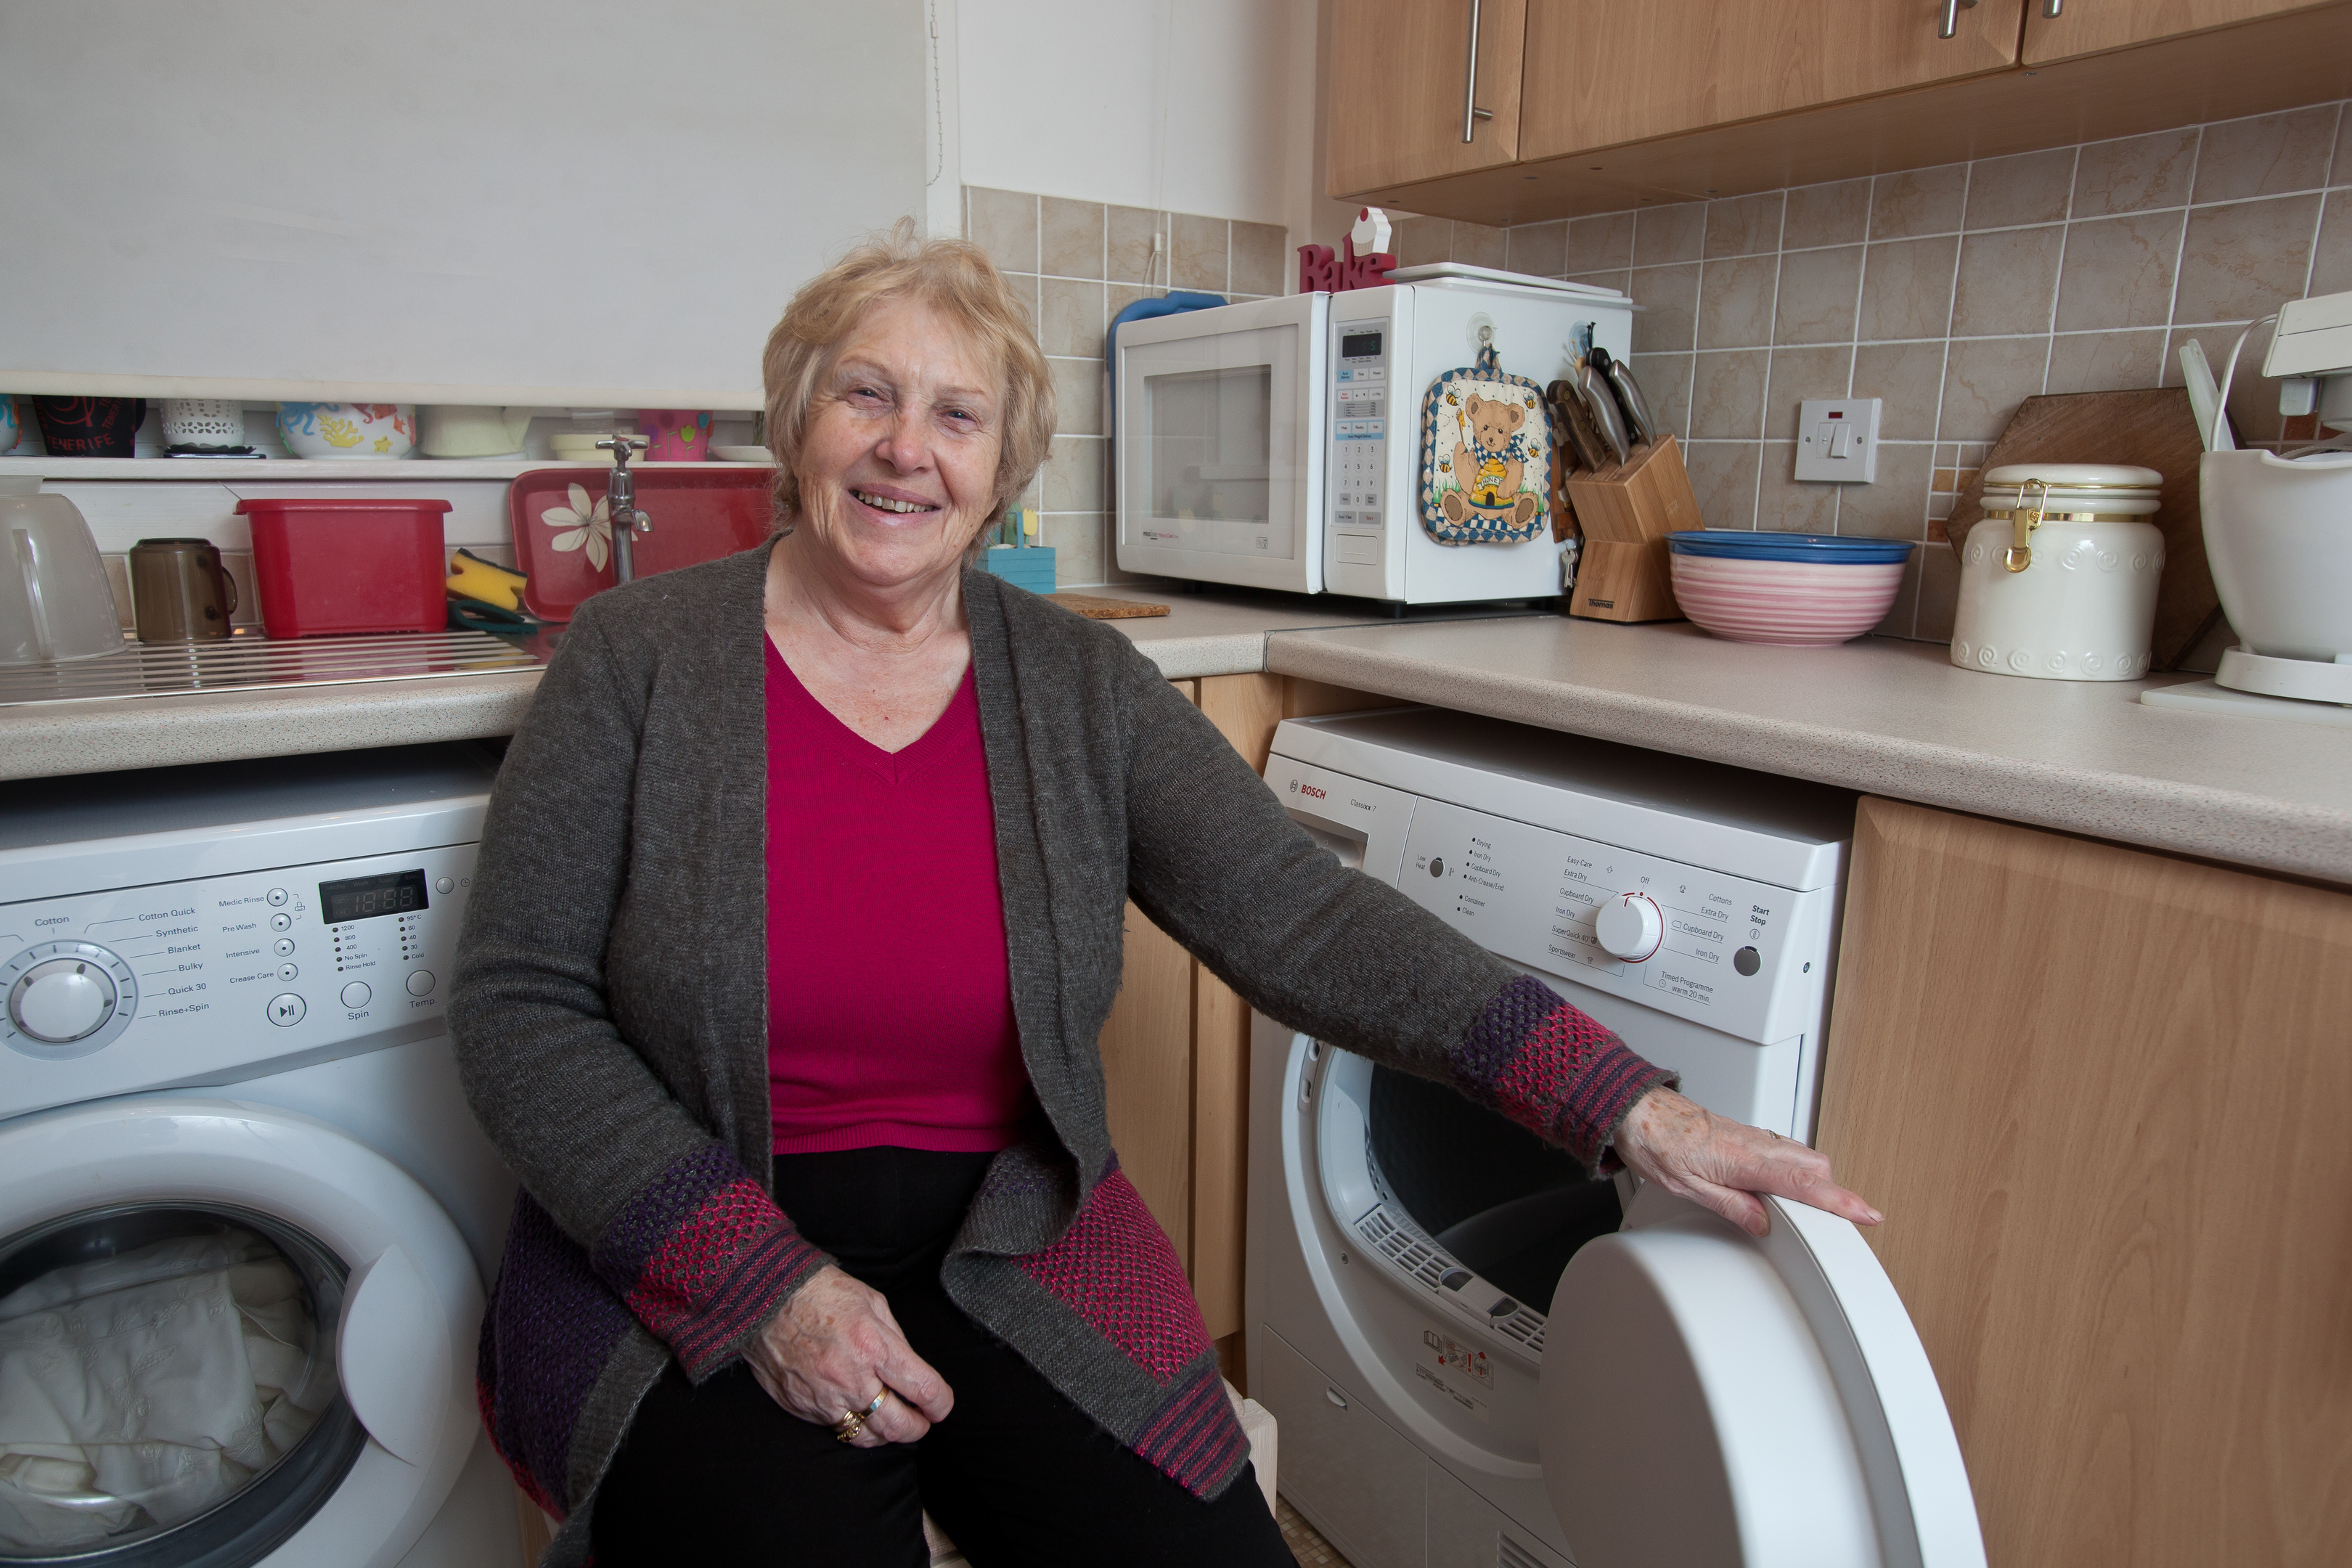 Sandra Collins is delighted with her new tumble dryer. (Tina Norris)